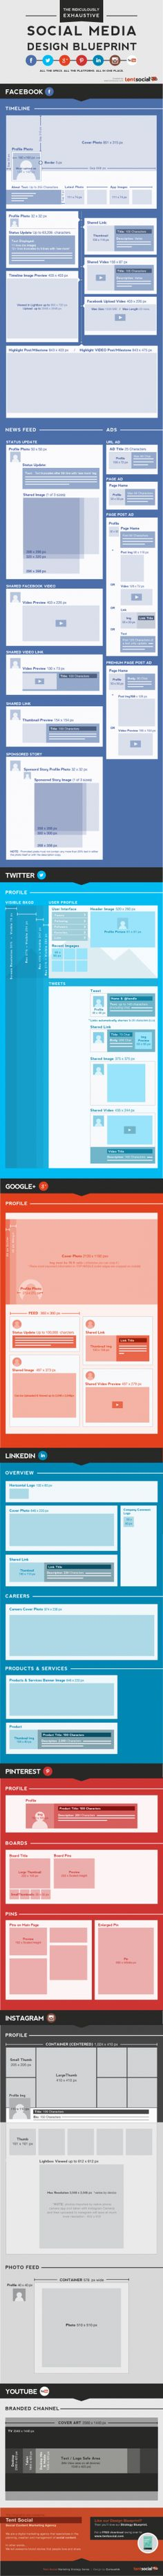 The Ridiculously Exhaustive Social Media Design Blueprint [Infographic] ~ Visualistan